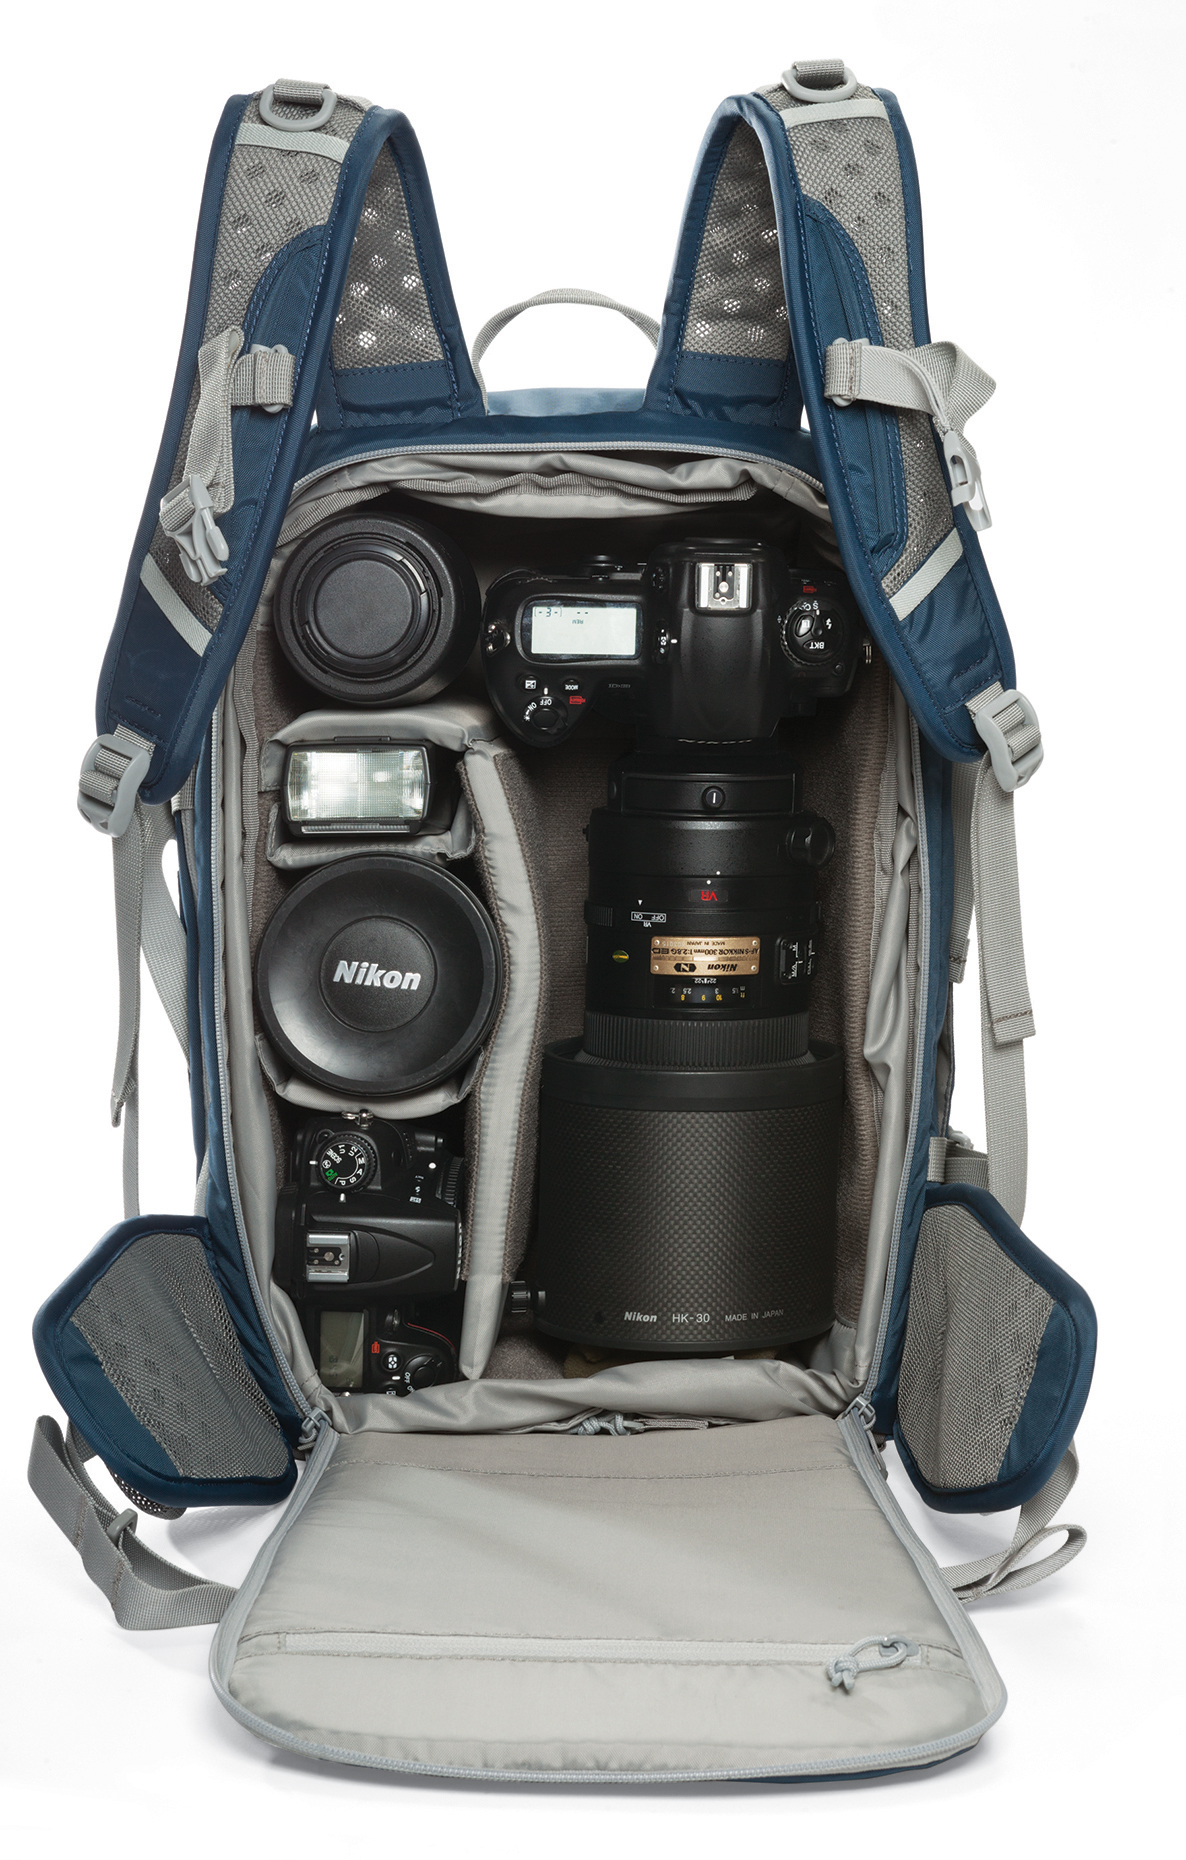 lowepro flipside sport 20l aw backpack now in stock buy camera news at cameraegg. Black Bedroom Furniture Sets. Home Design Ideas